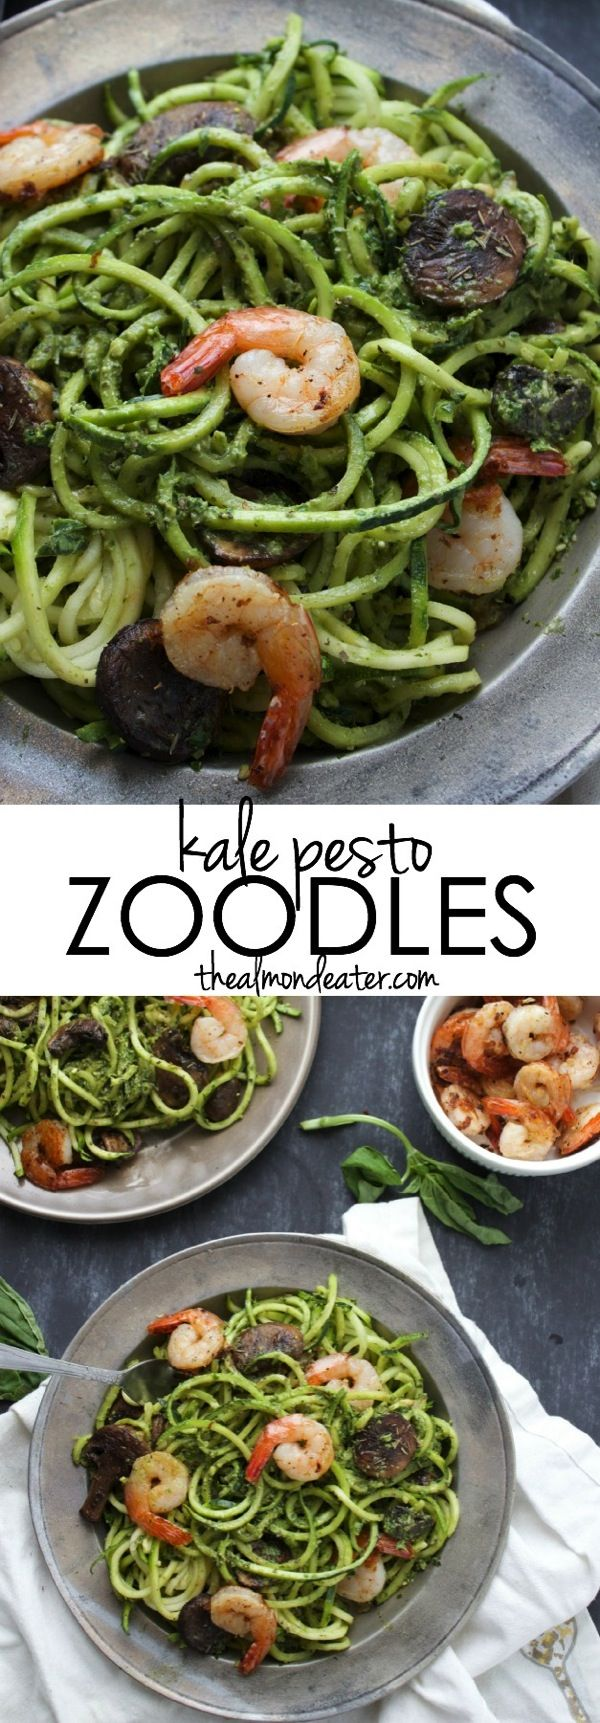 Delicious zoodles covered in a creamy kale pesto sauce topped with sautéed mushrooms and shrimp--ready in under 30 mins! #zoodles